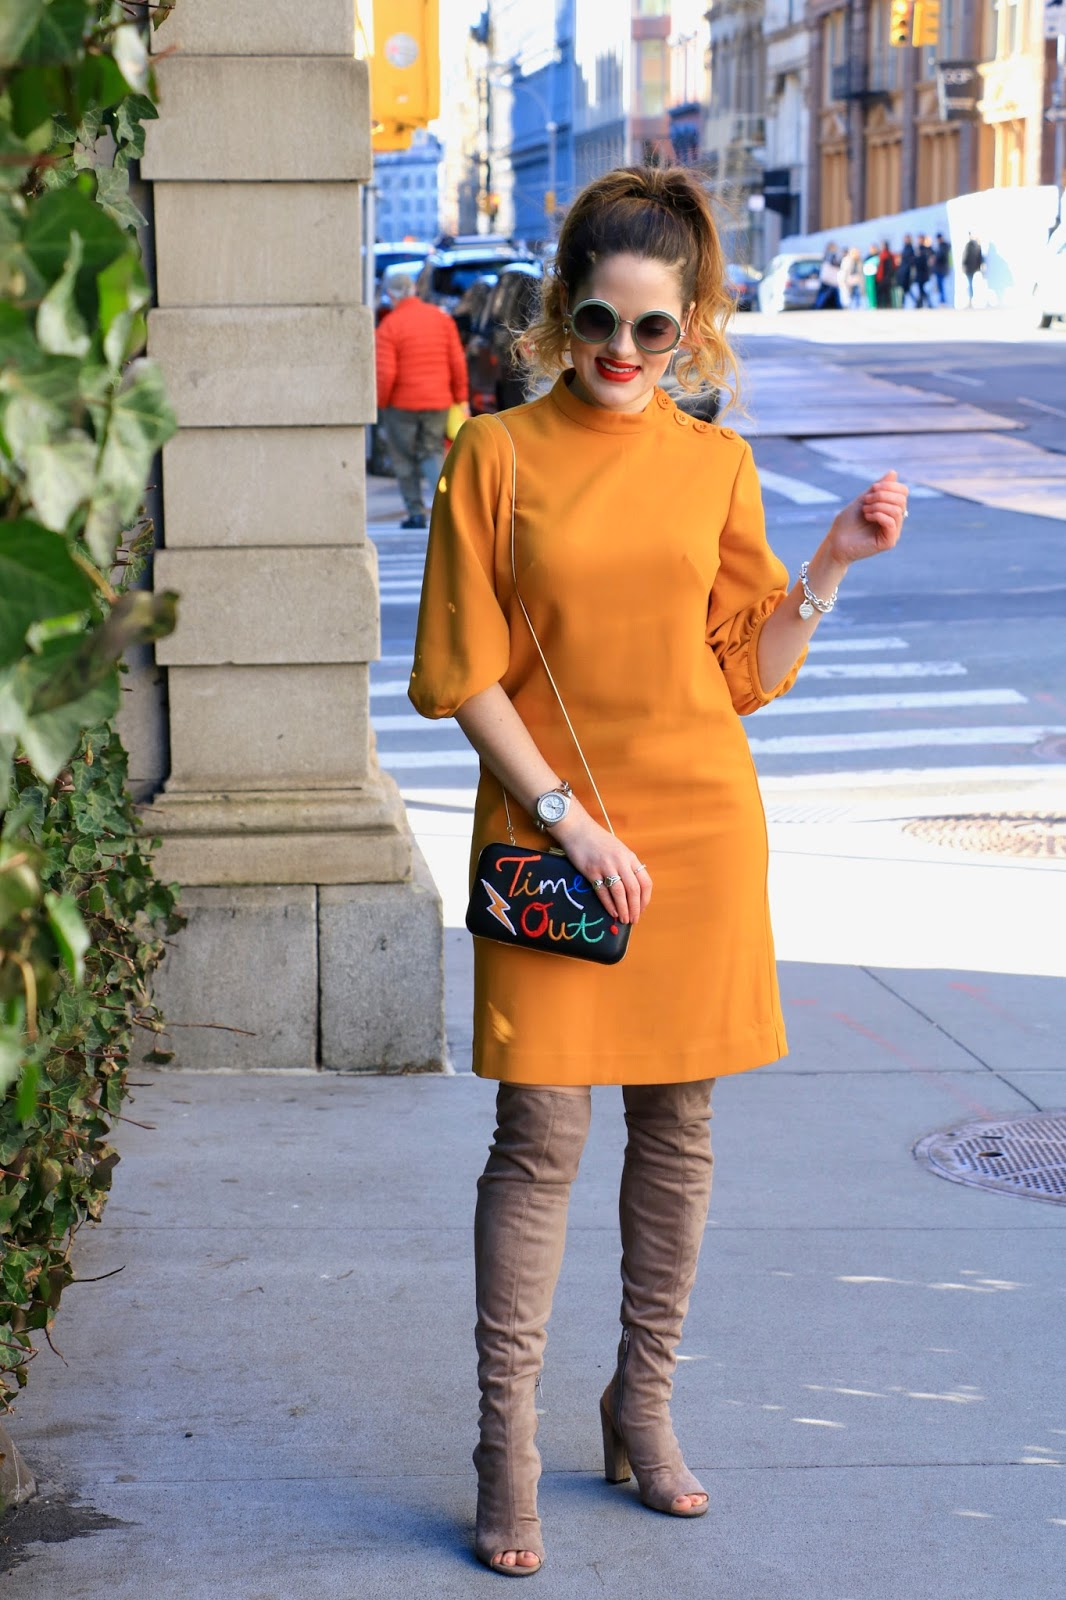 Nyc fashion blogger Kathleen Harper's spring dress